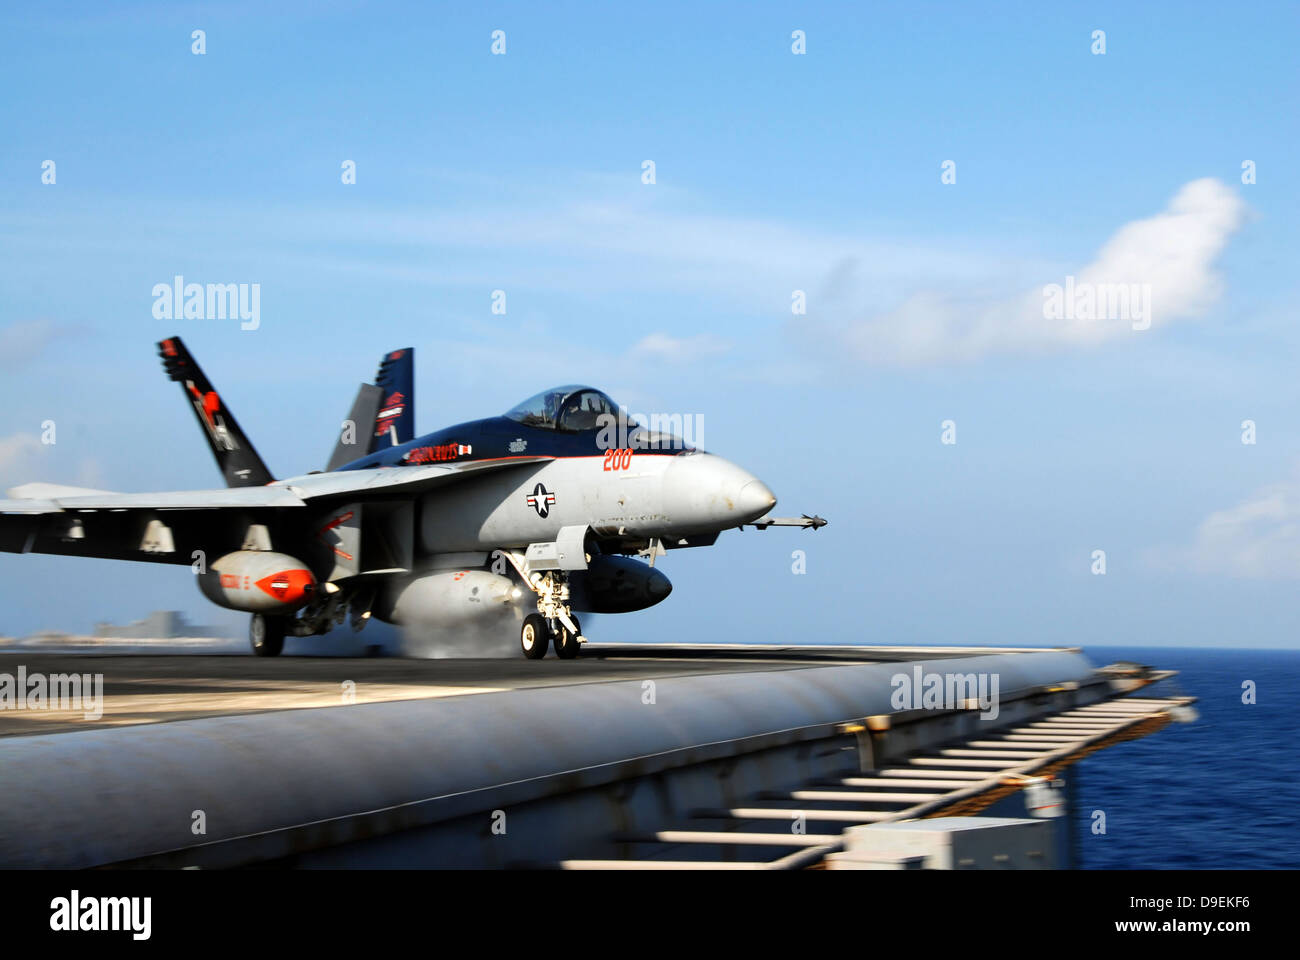 South China Sea, August 10, 2011 - An F/A-18E Super Hornet launches from the aircraft carrier USS Ronald Reagan. - Stock Image